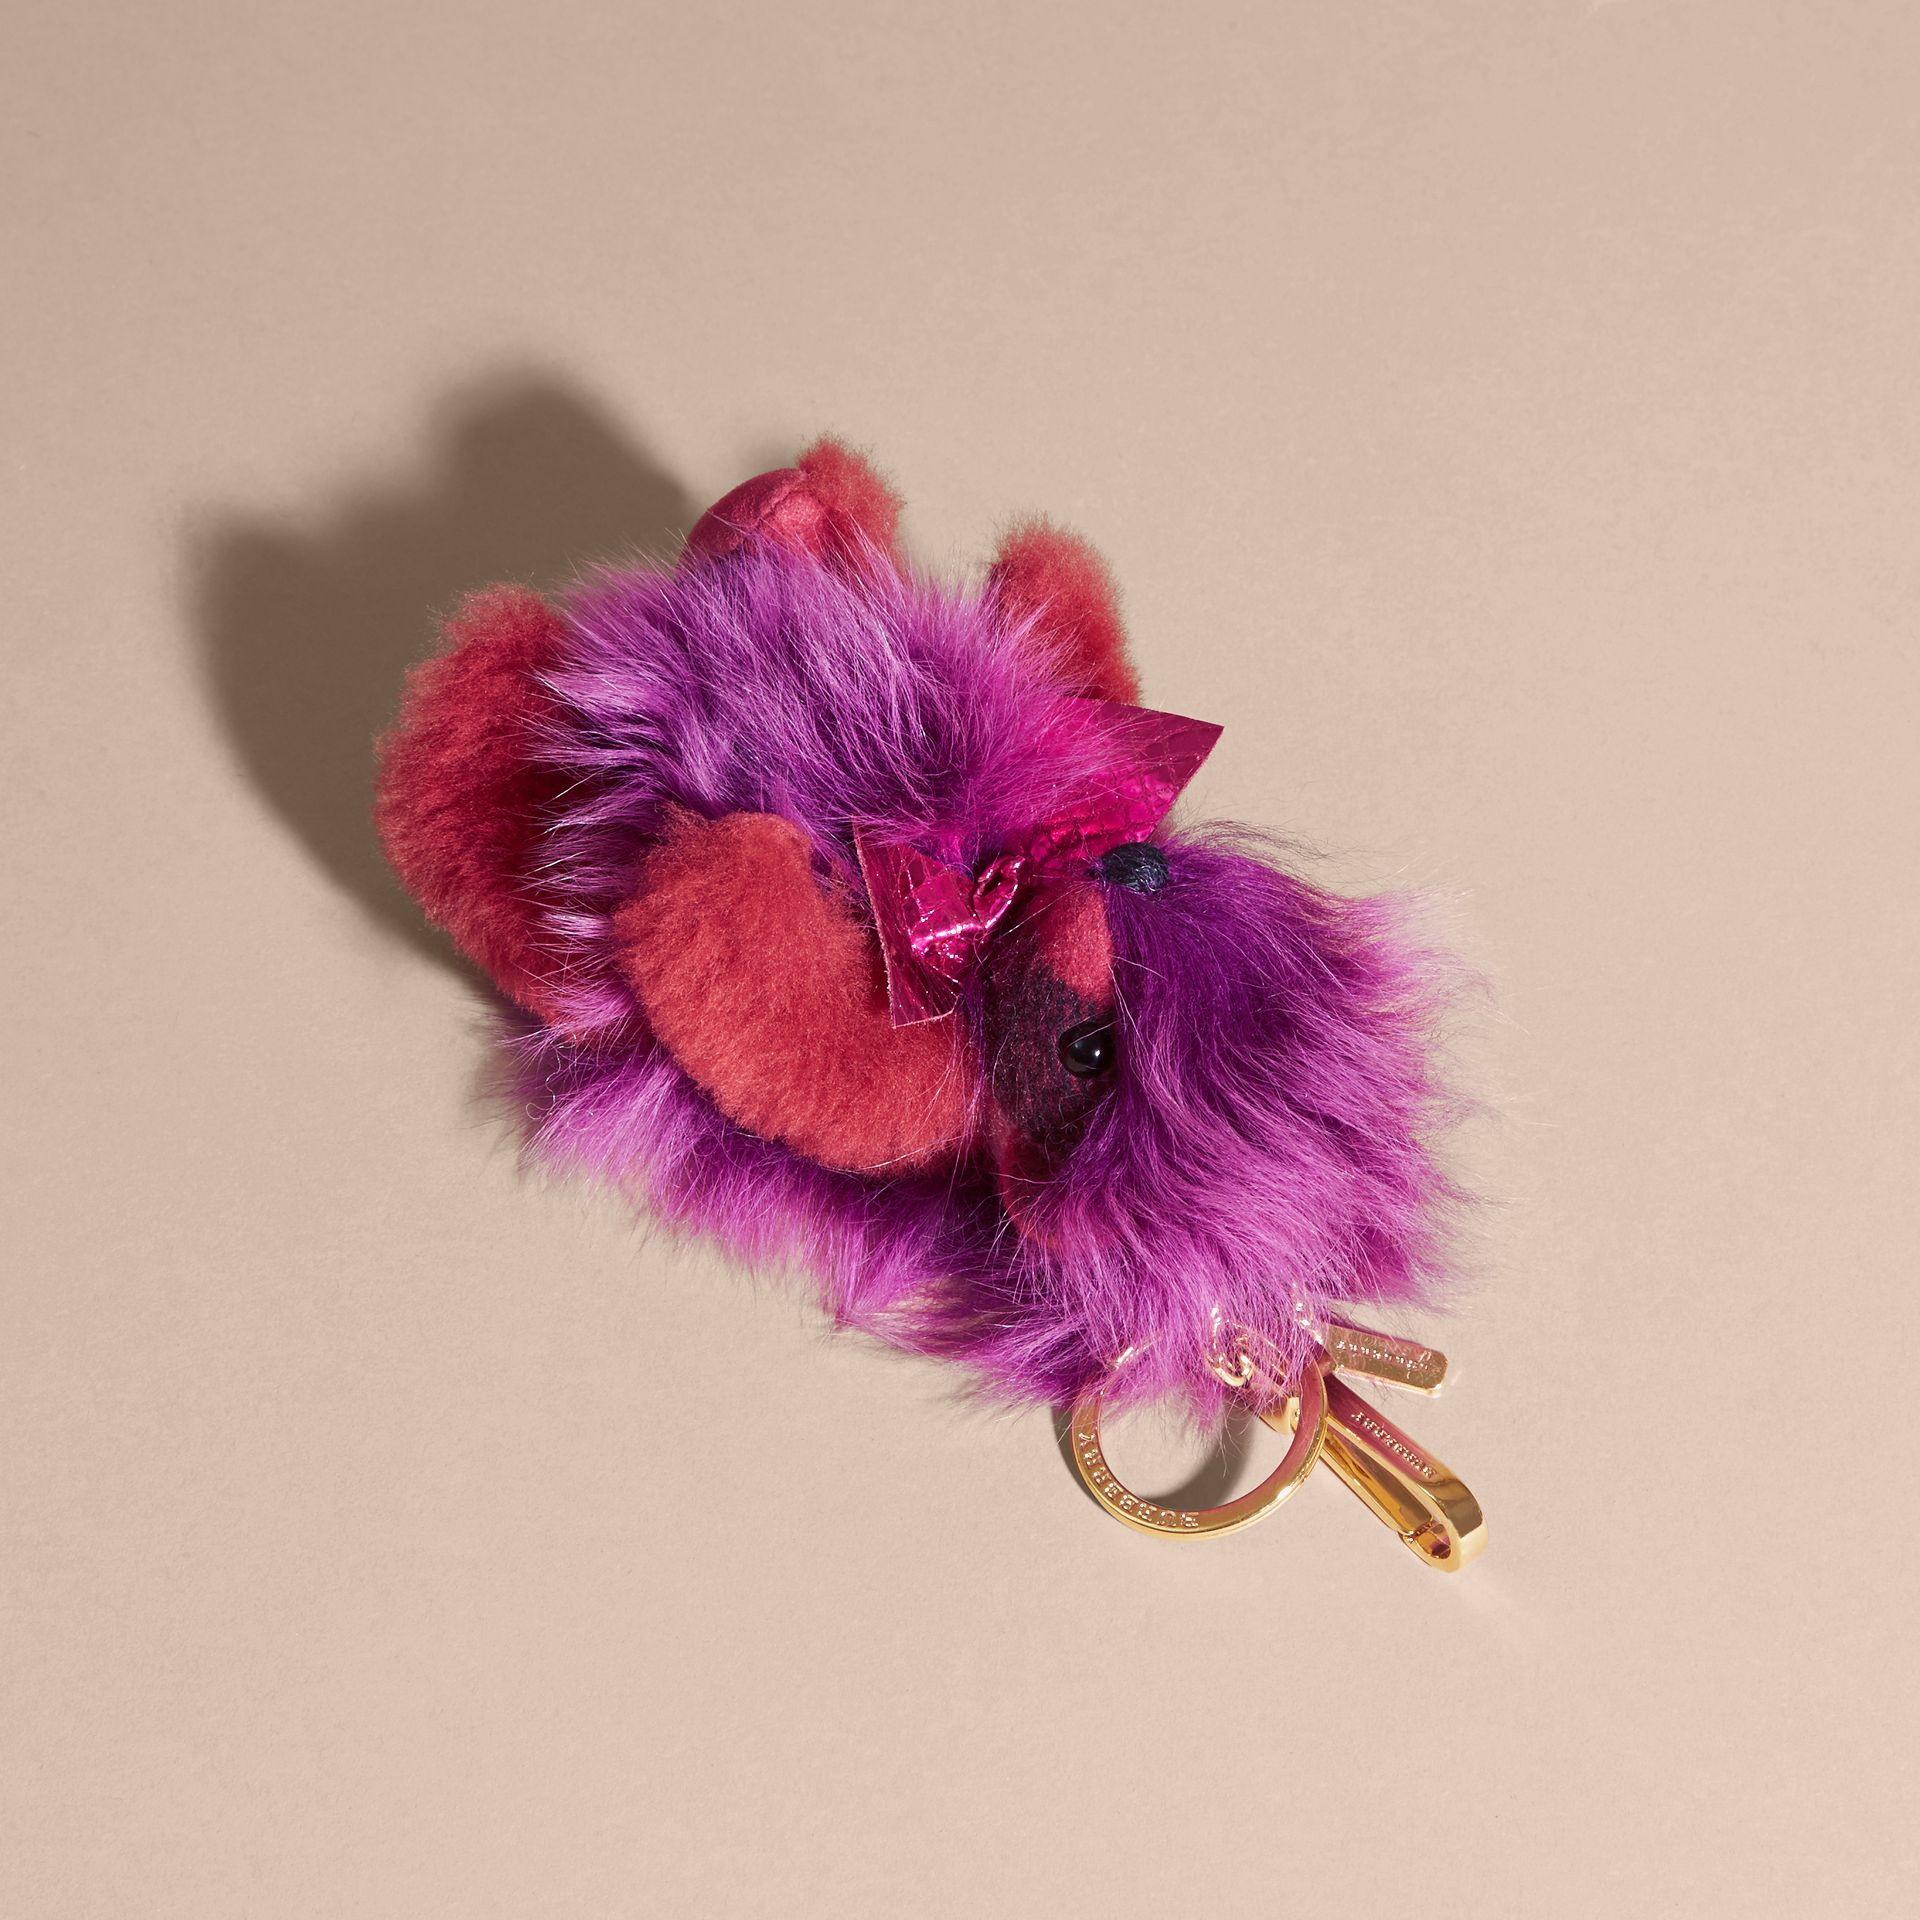 Thomas Bear Pom-Pom Charm in Check Cashmere in Fuchsia Pink - Women | Burberry Australia - gallery image 4